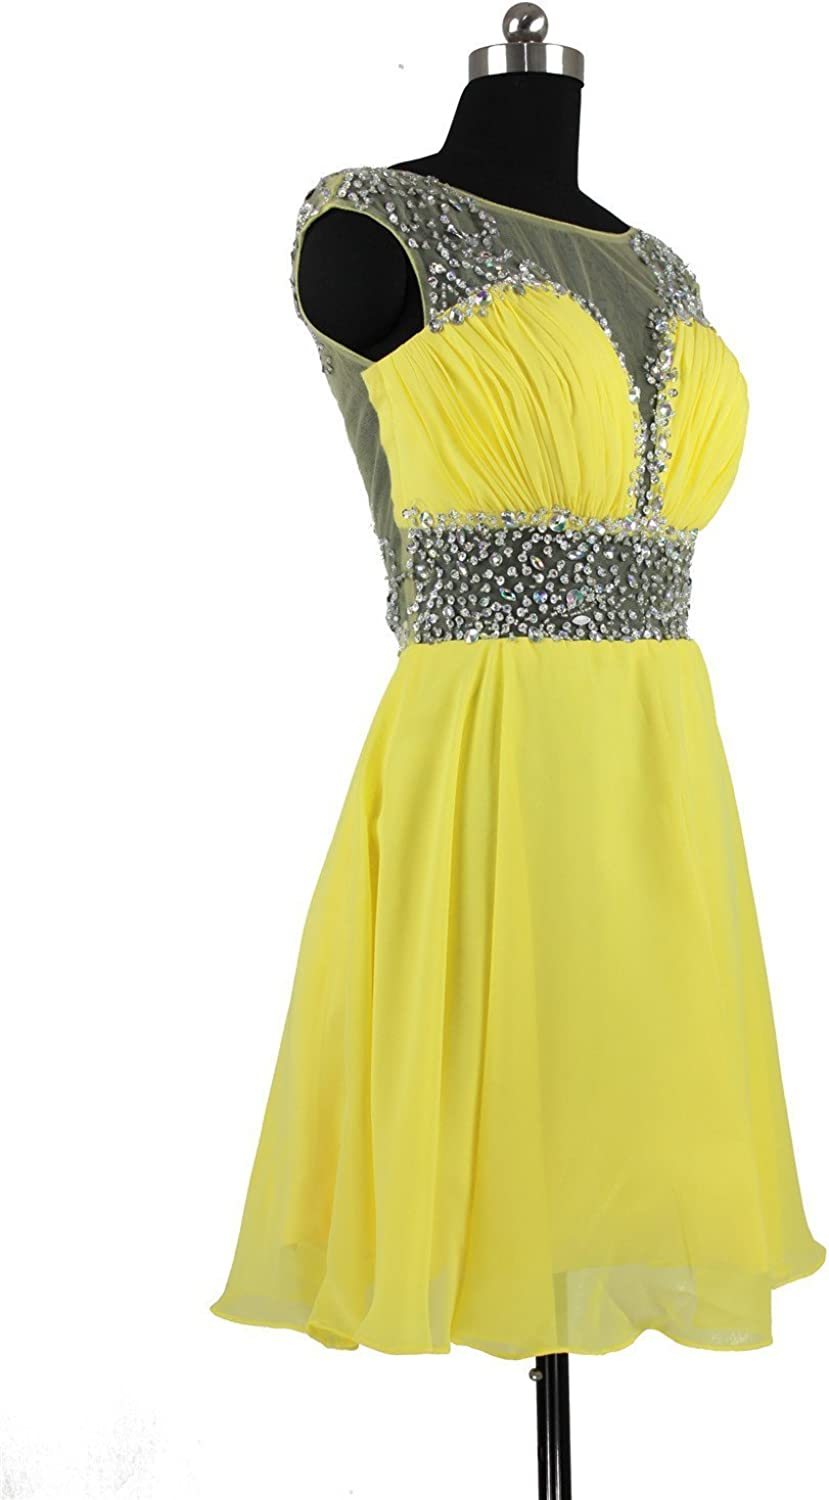 Charmingbridal Scoop Short Prom Party Dress Cocktail Homecoming Dress